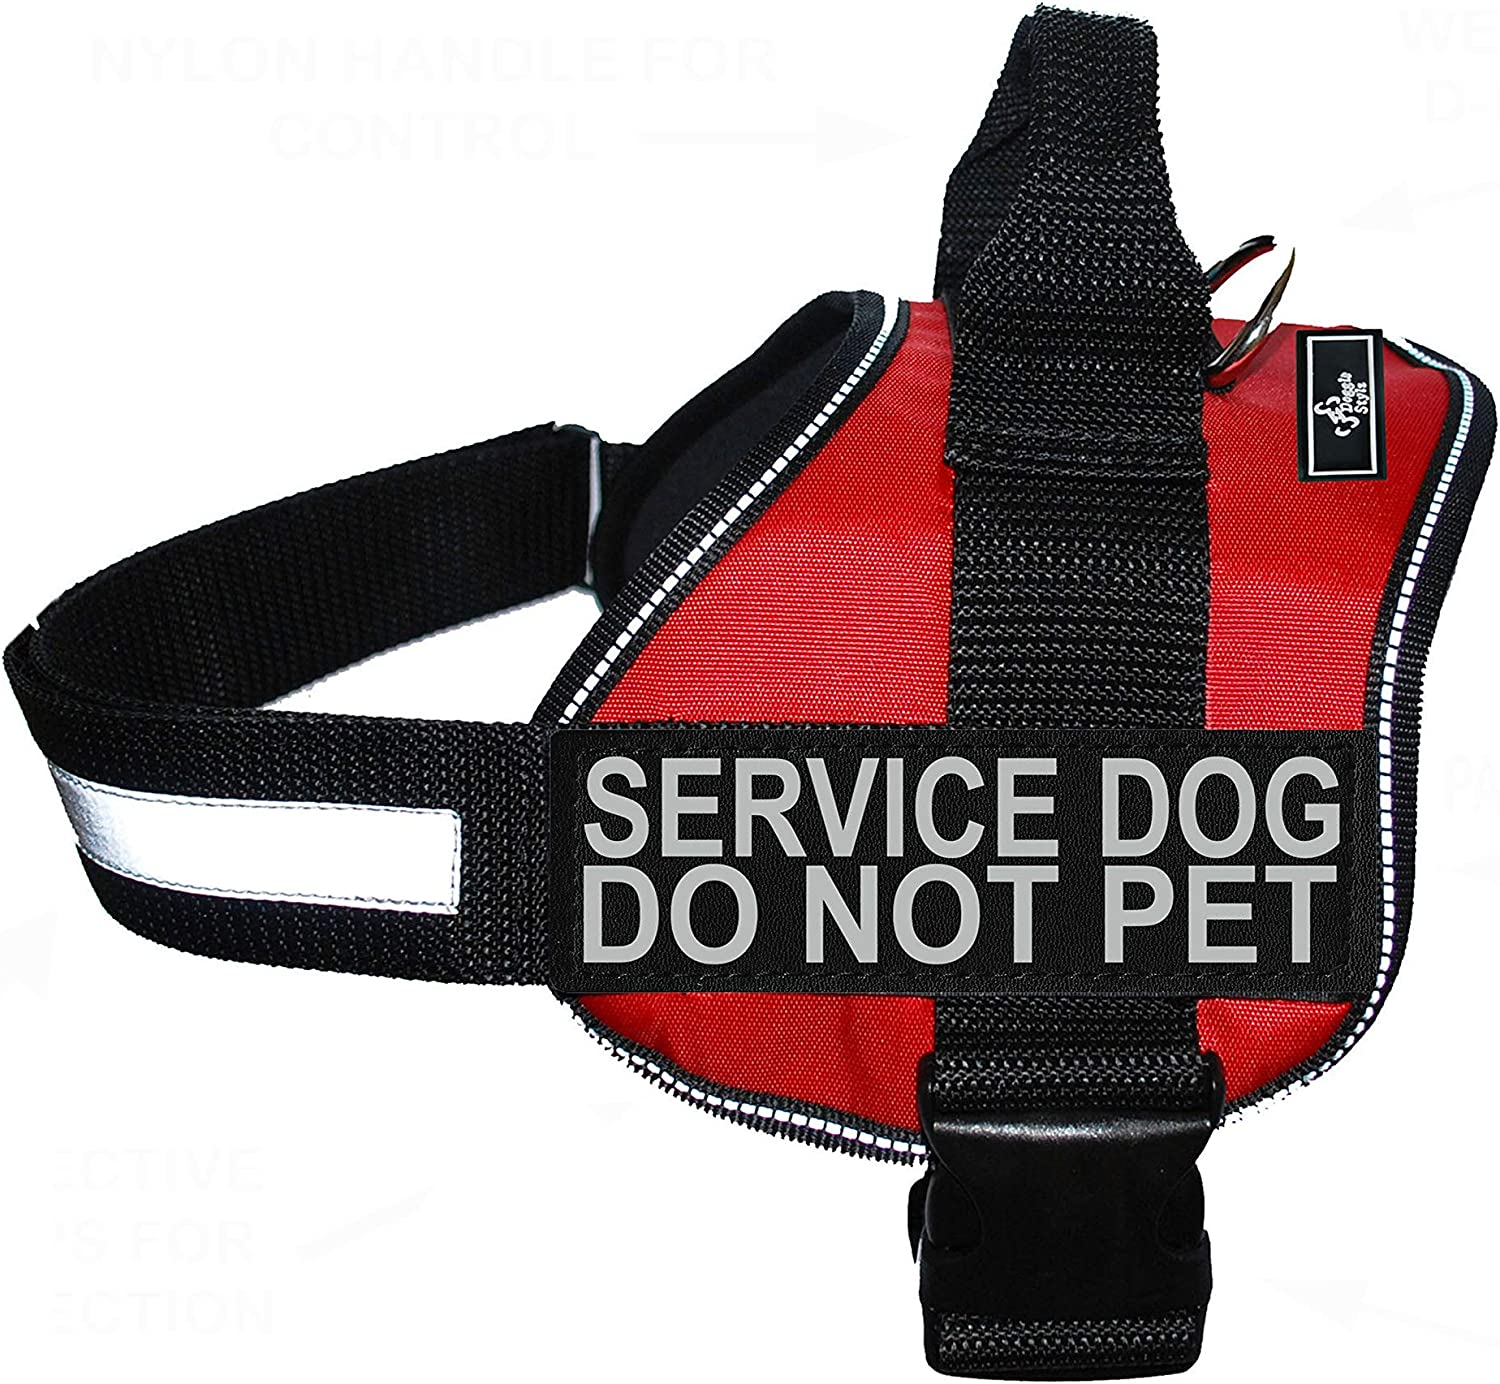 Doggie Stylz Service Dog Harness Vest 2 Price reduction Comes Reflective Se Ranking TOP1 with